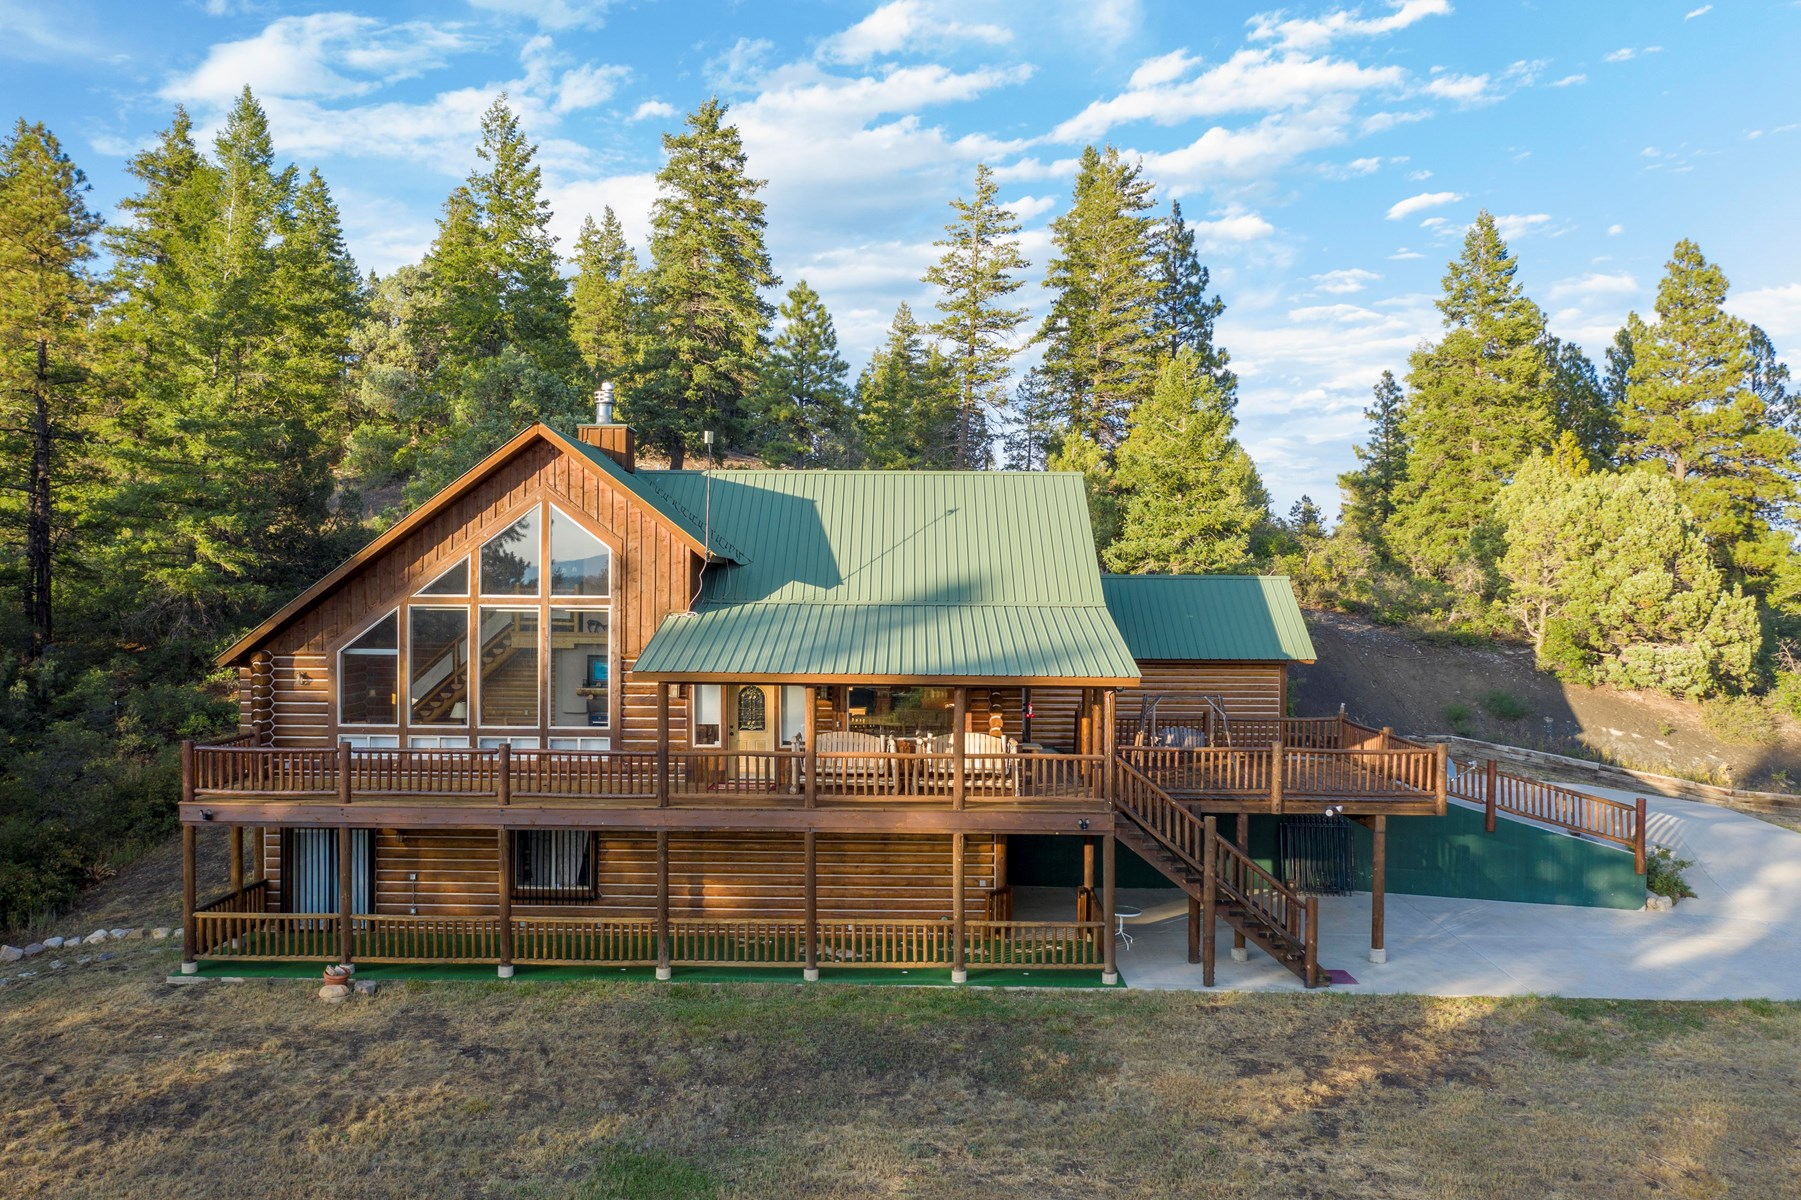 Colorado Log Home & Hunting Property for Sale, San Juan N.F.